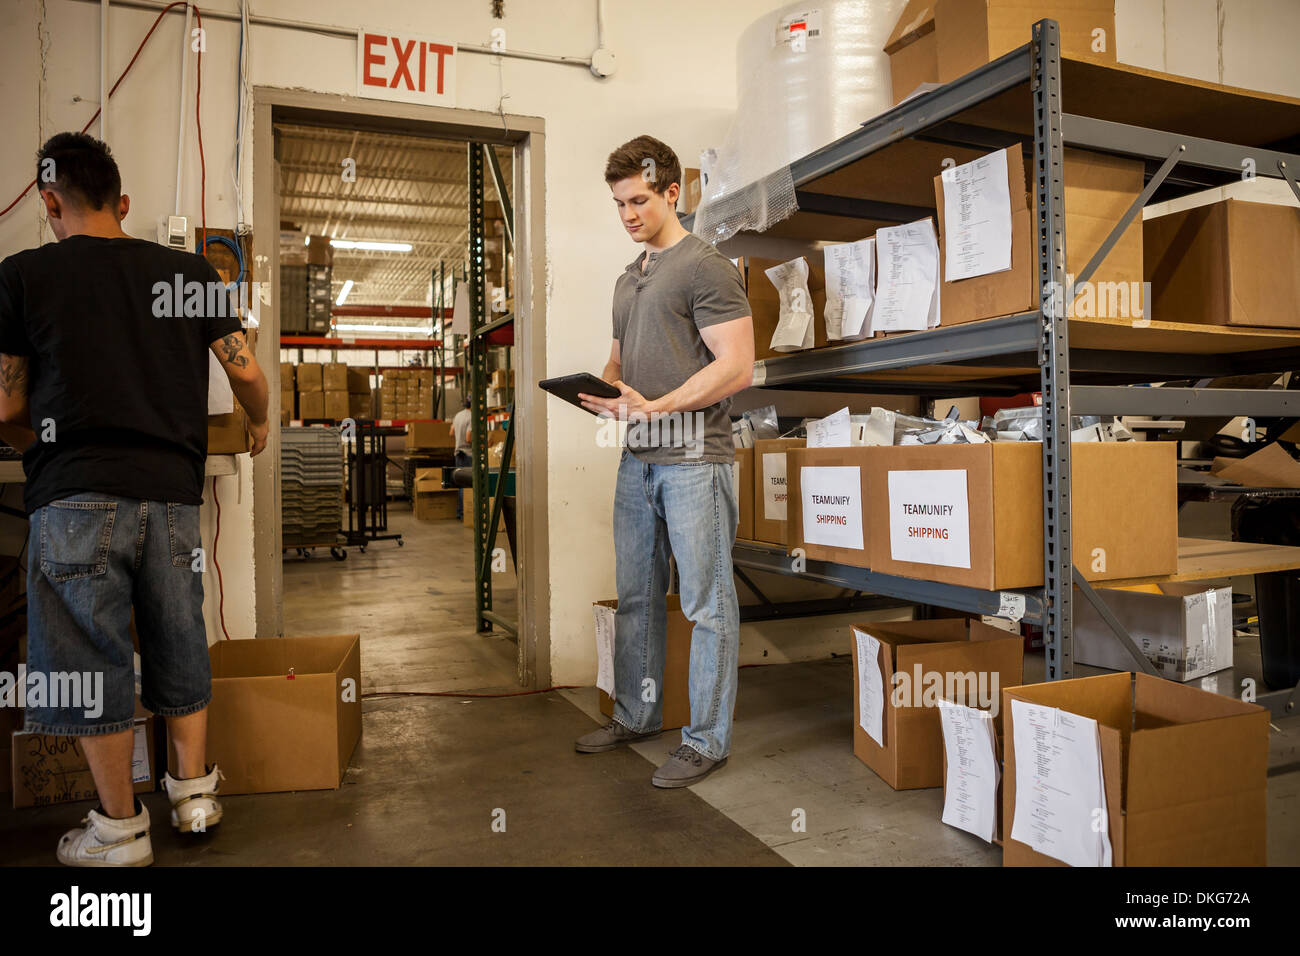 Workers in warehouse looking at paperwork - Stock Image